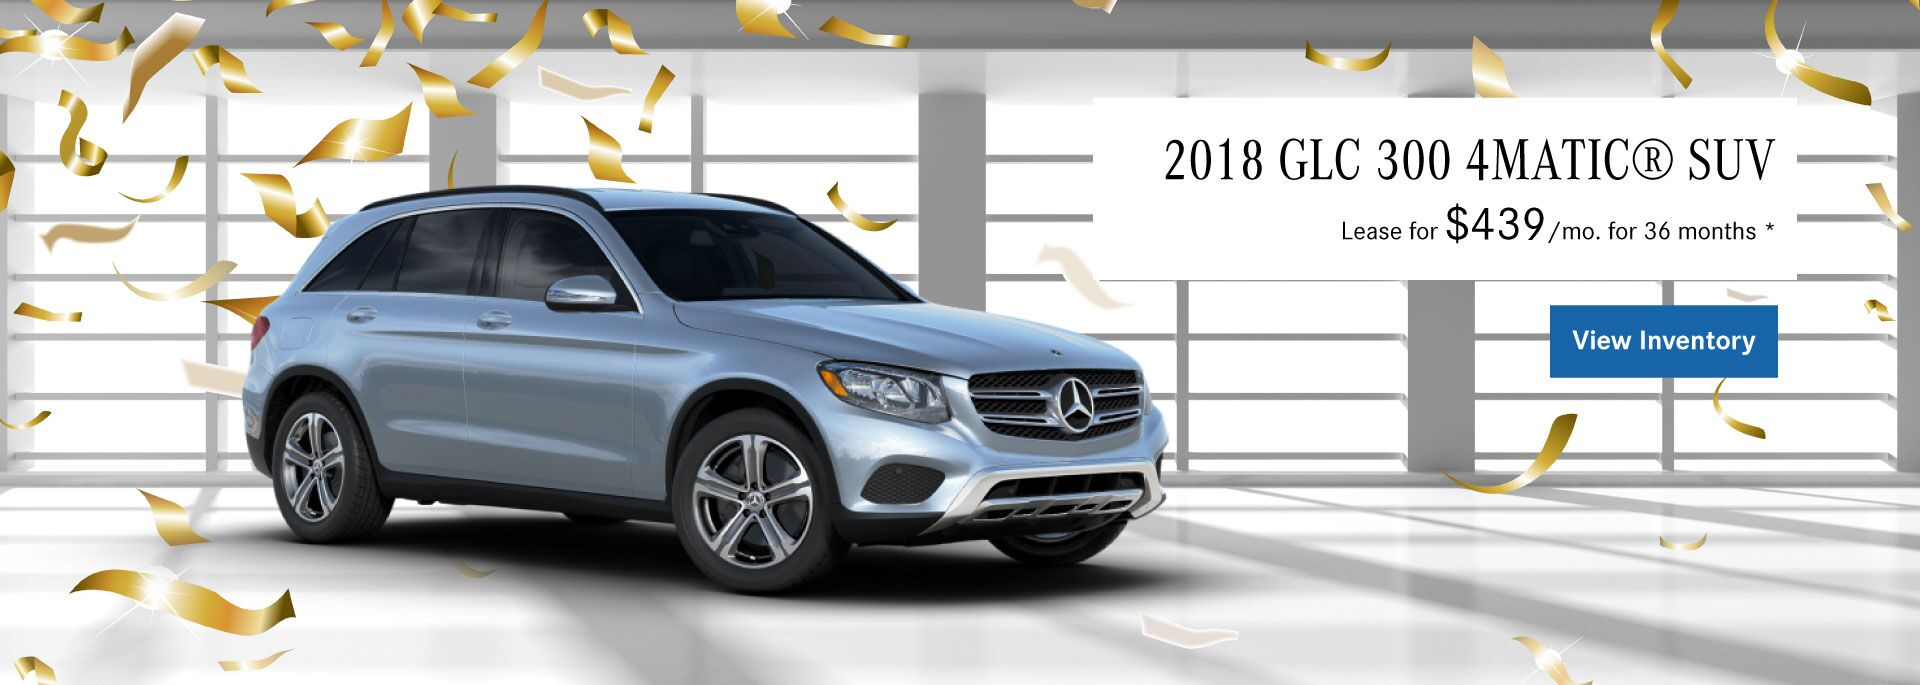 GLC Lease Offer